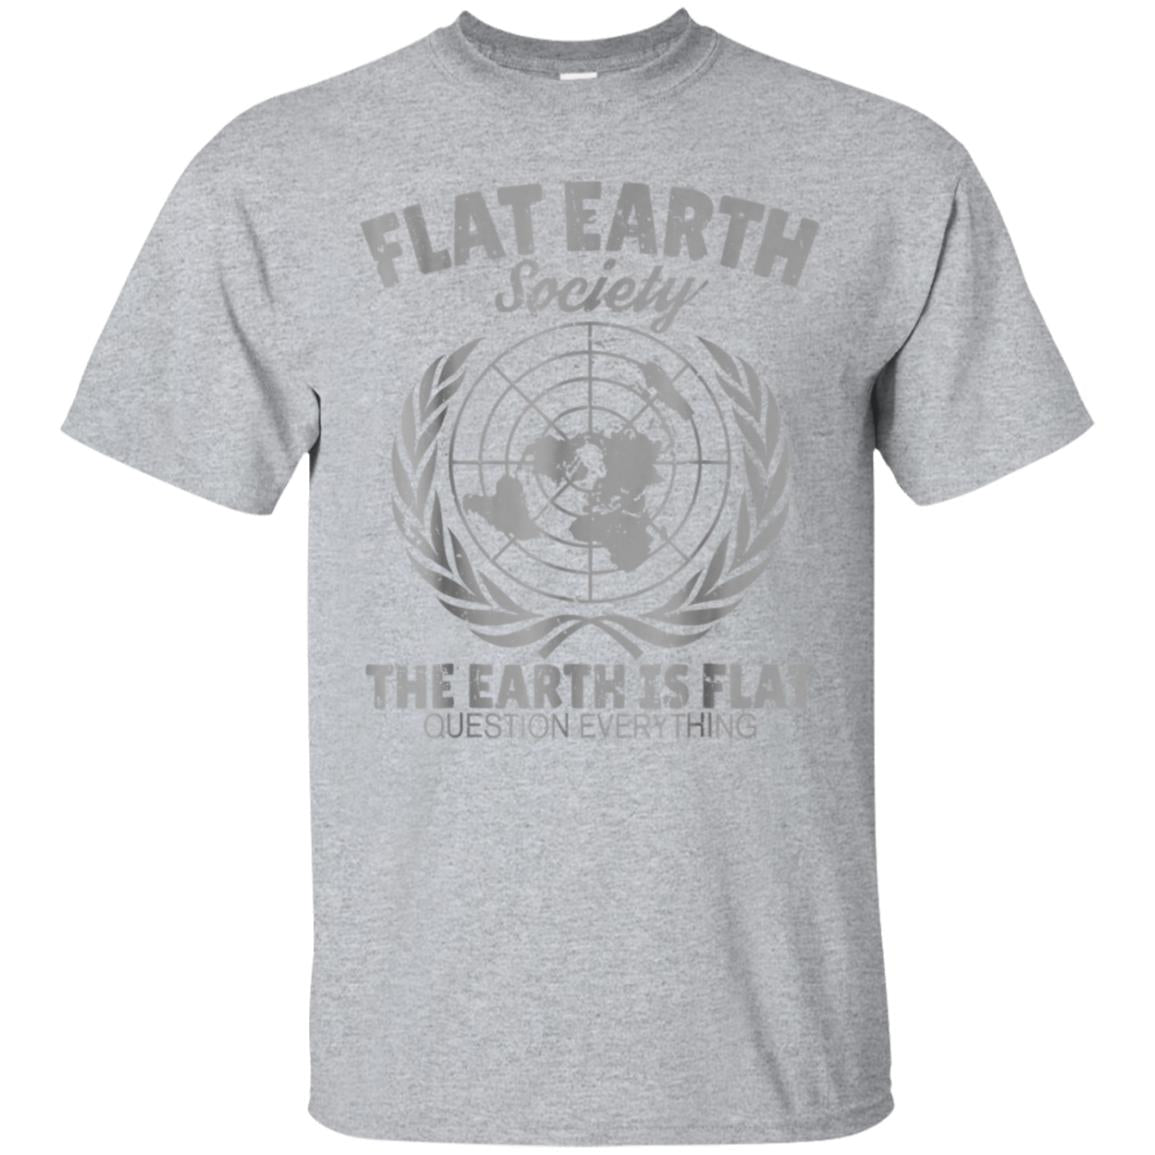 Flat Earth Society T-Shirt 99promocode